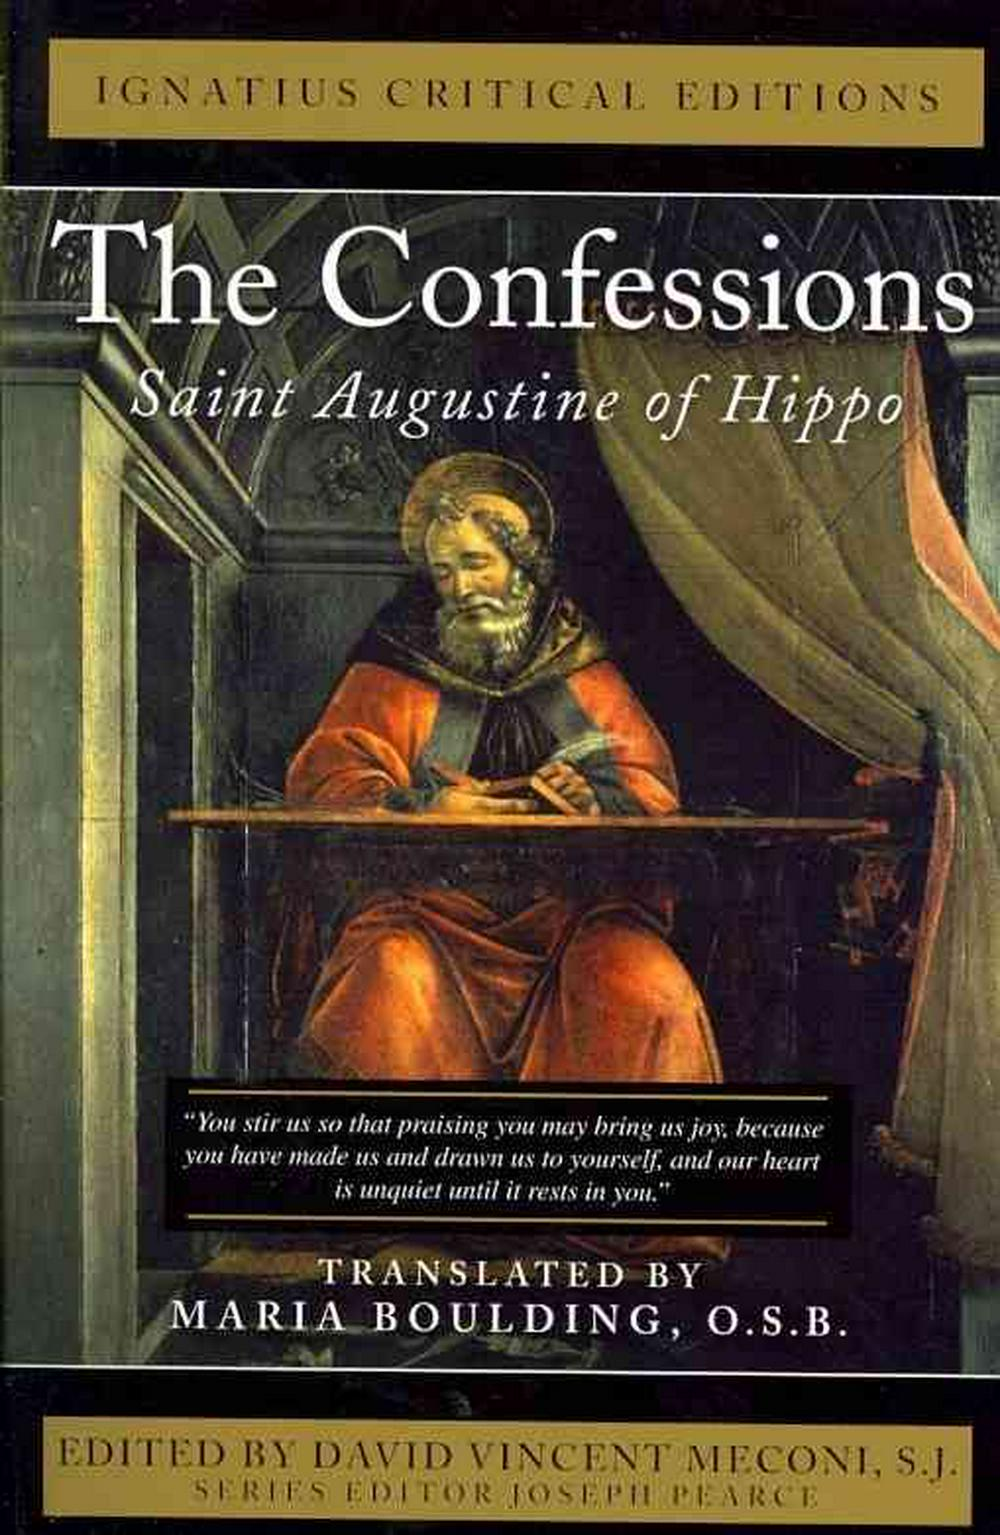 The Confessions: Saint Augustine of Hippo by Saint Augustine of Hippo, ISBN: 9781586176839